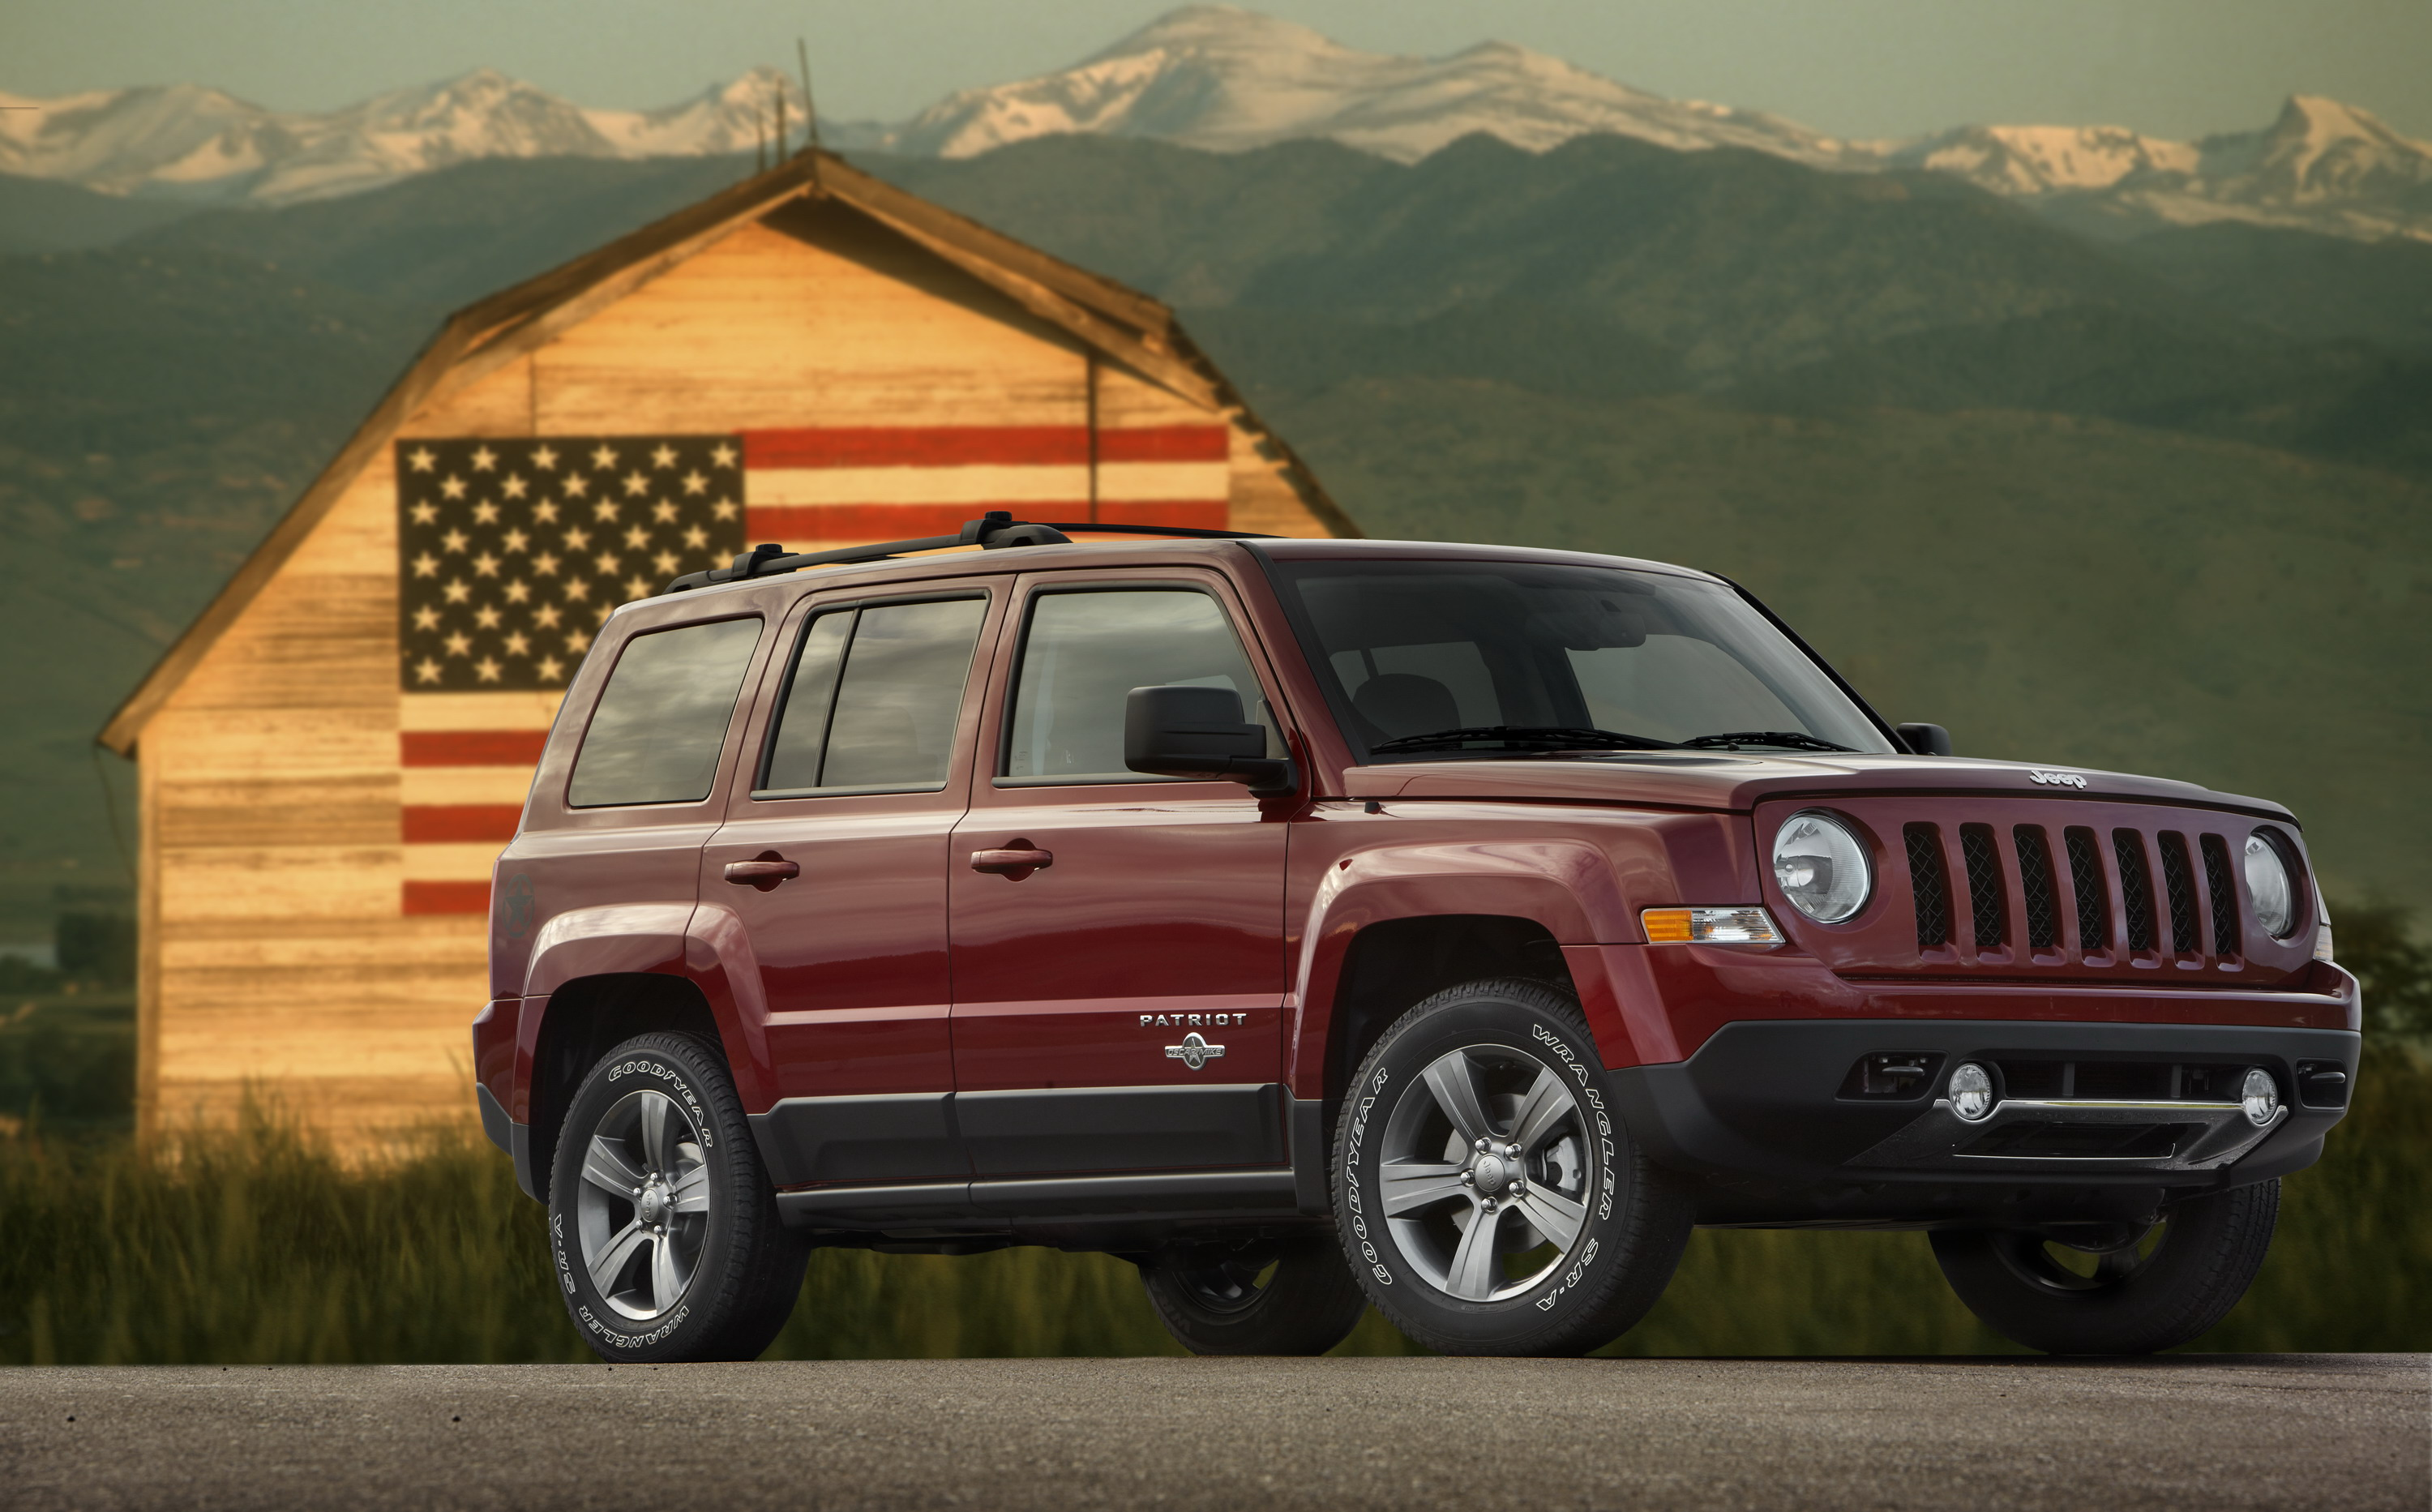 Jeep Wrangler Freedom Edition >> 2013 Jeep Patriot Freedom Edition | Top Speed